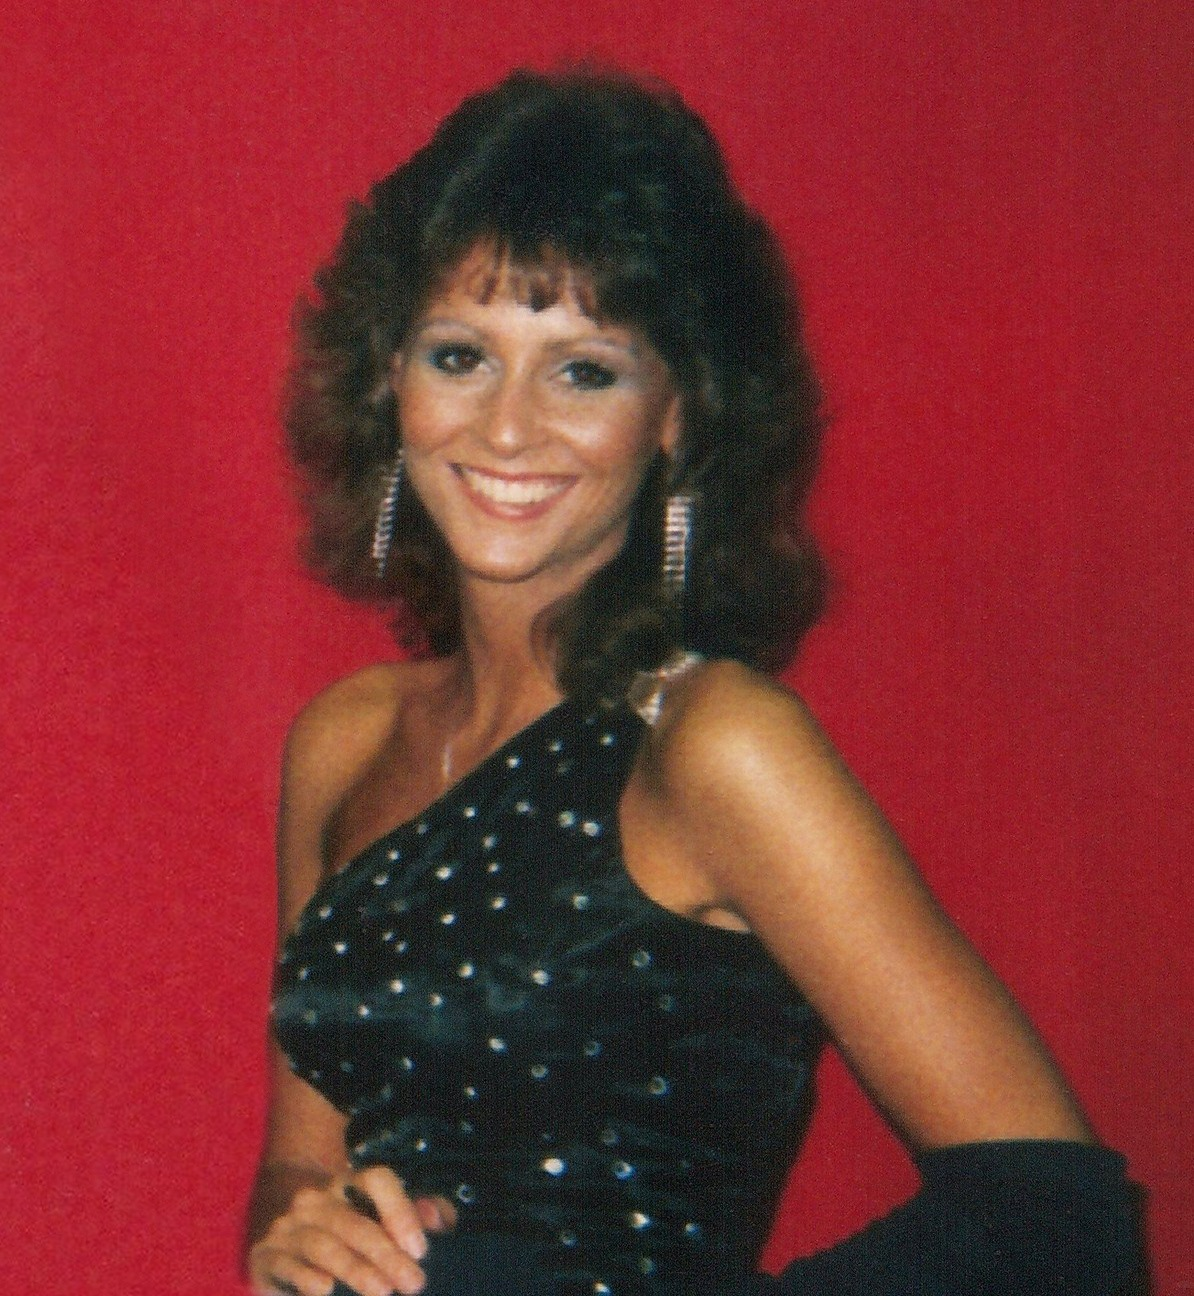 Description miss elizabeth